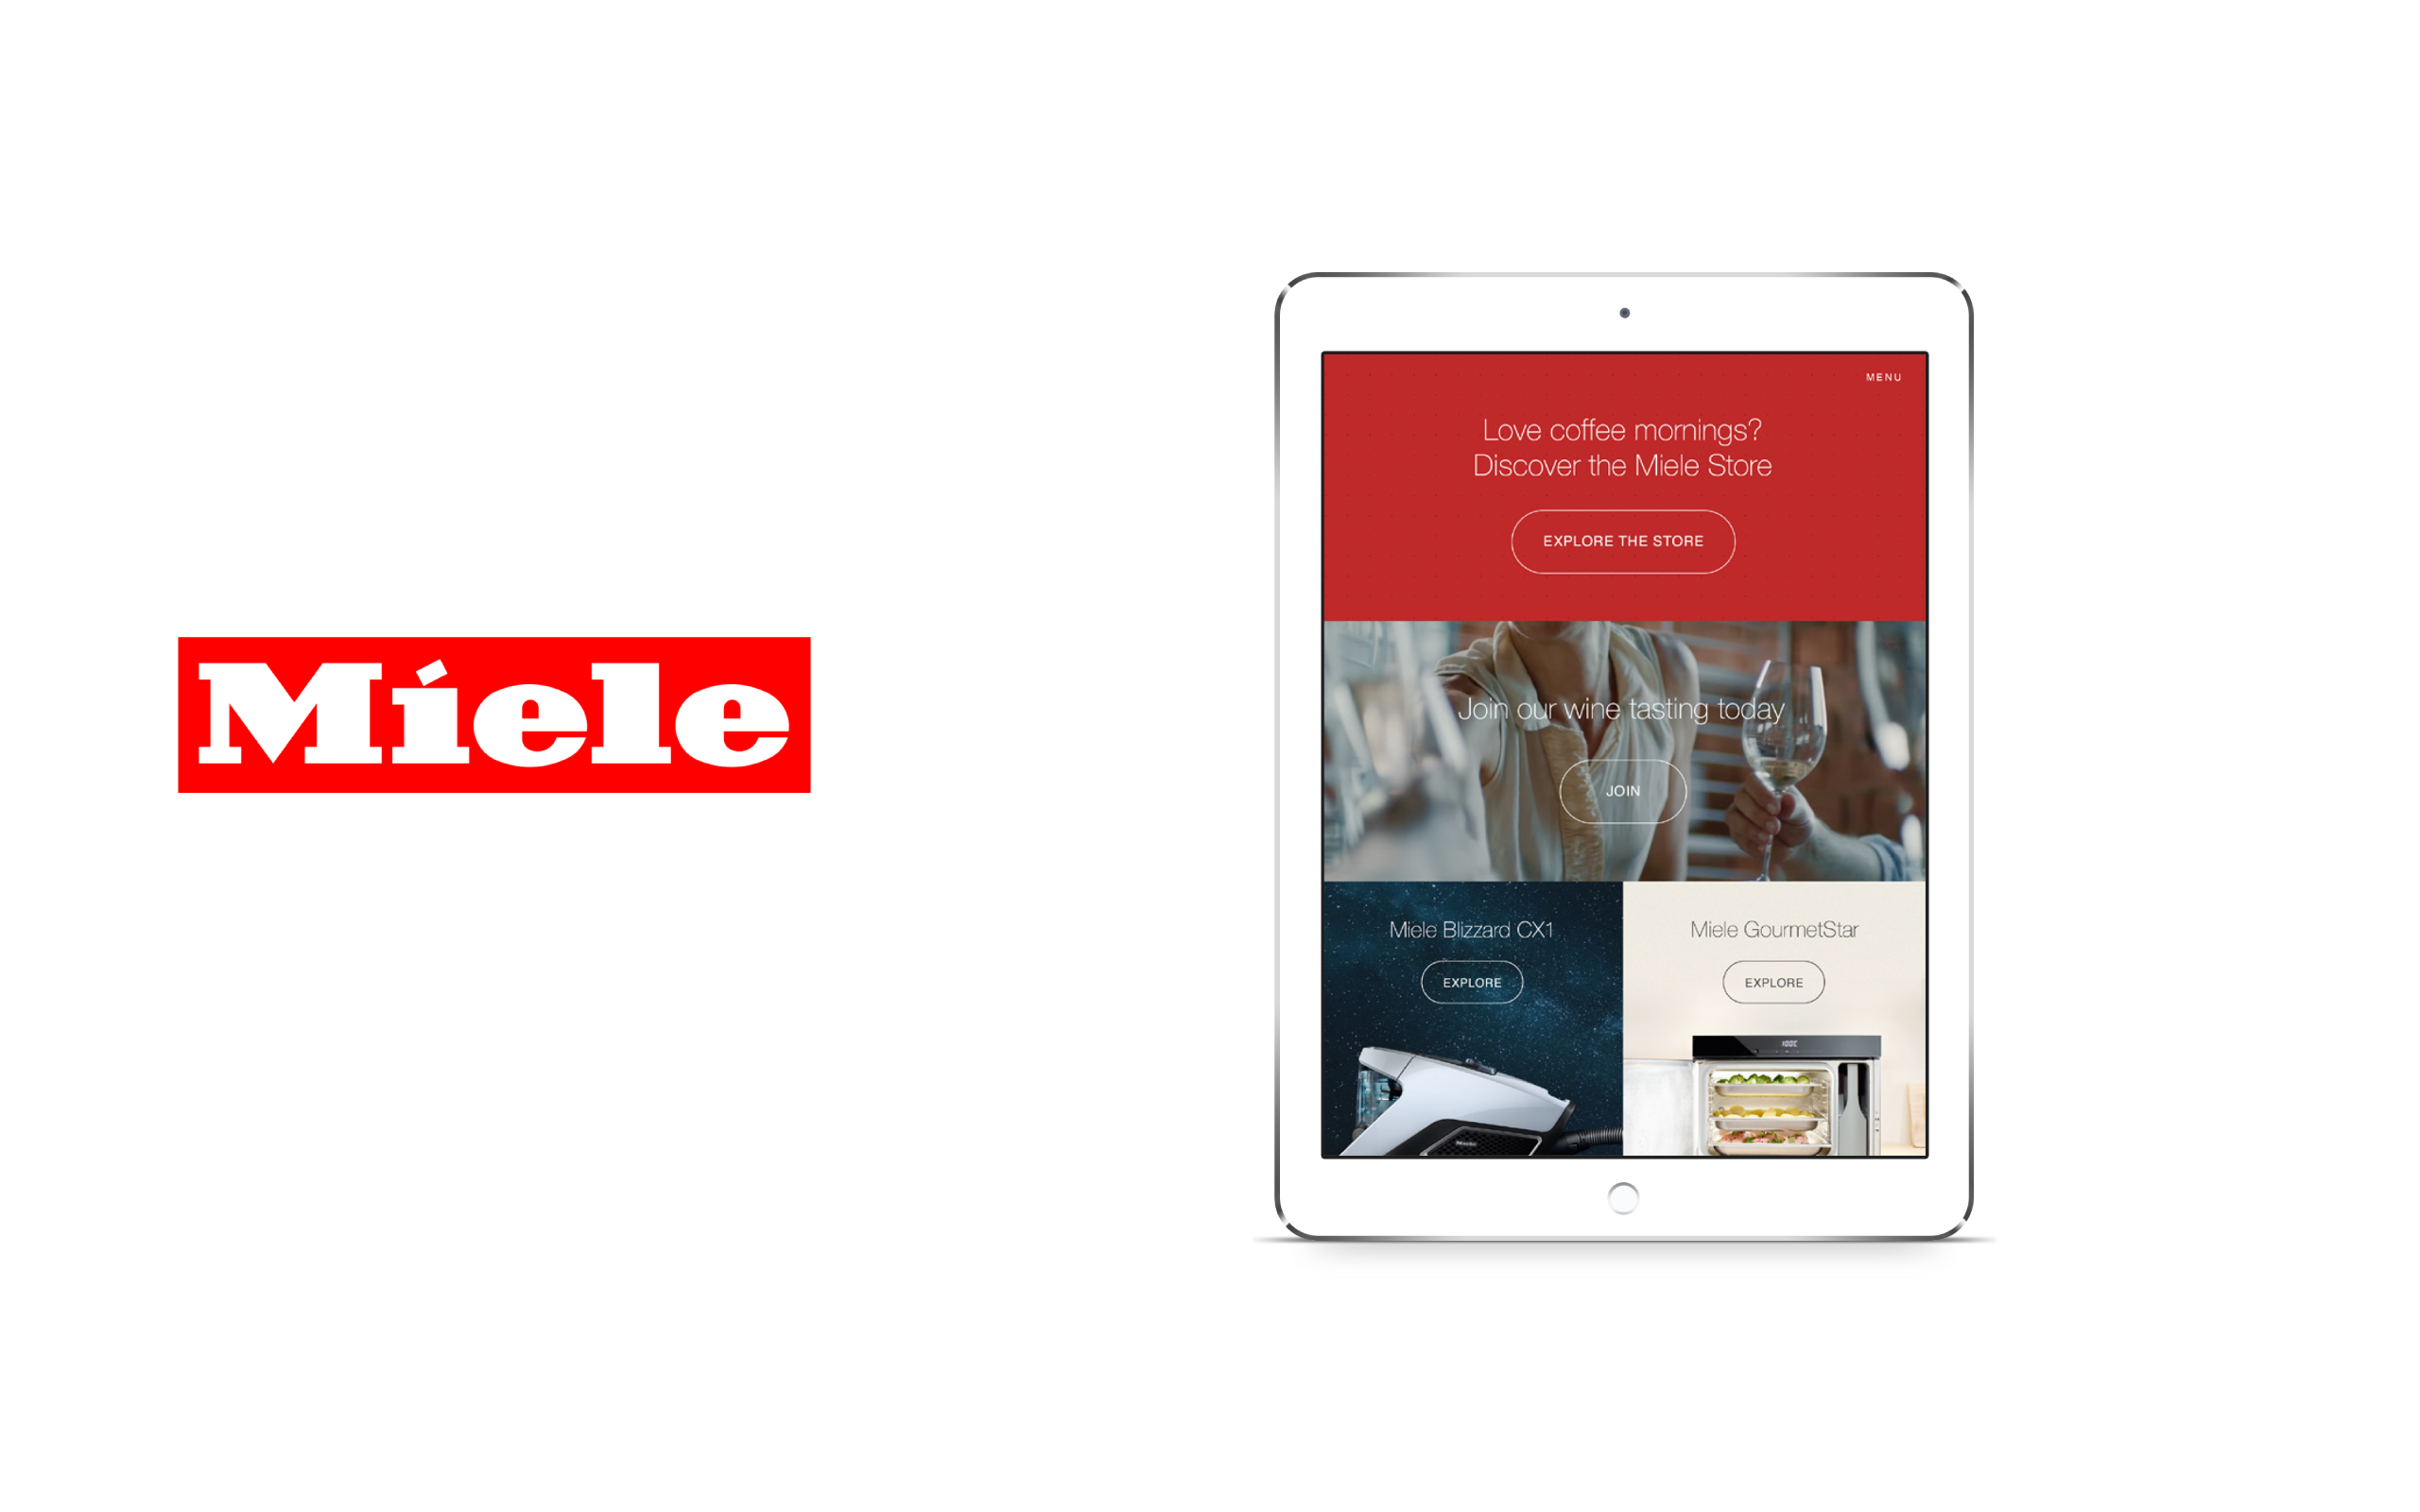 Miele Experience Store